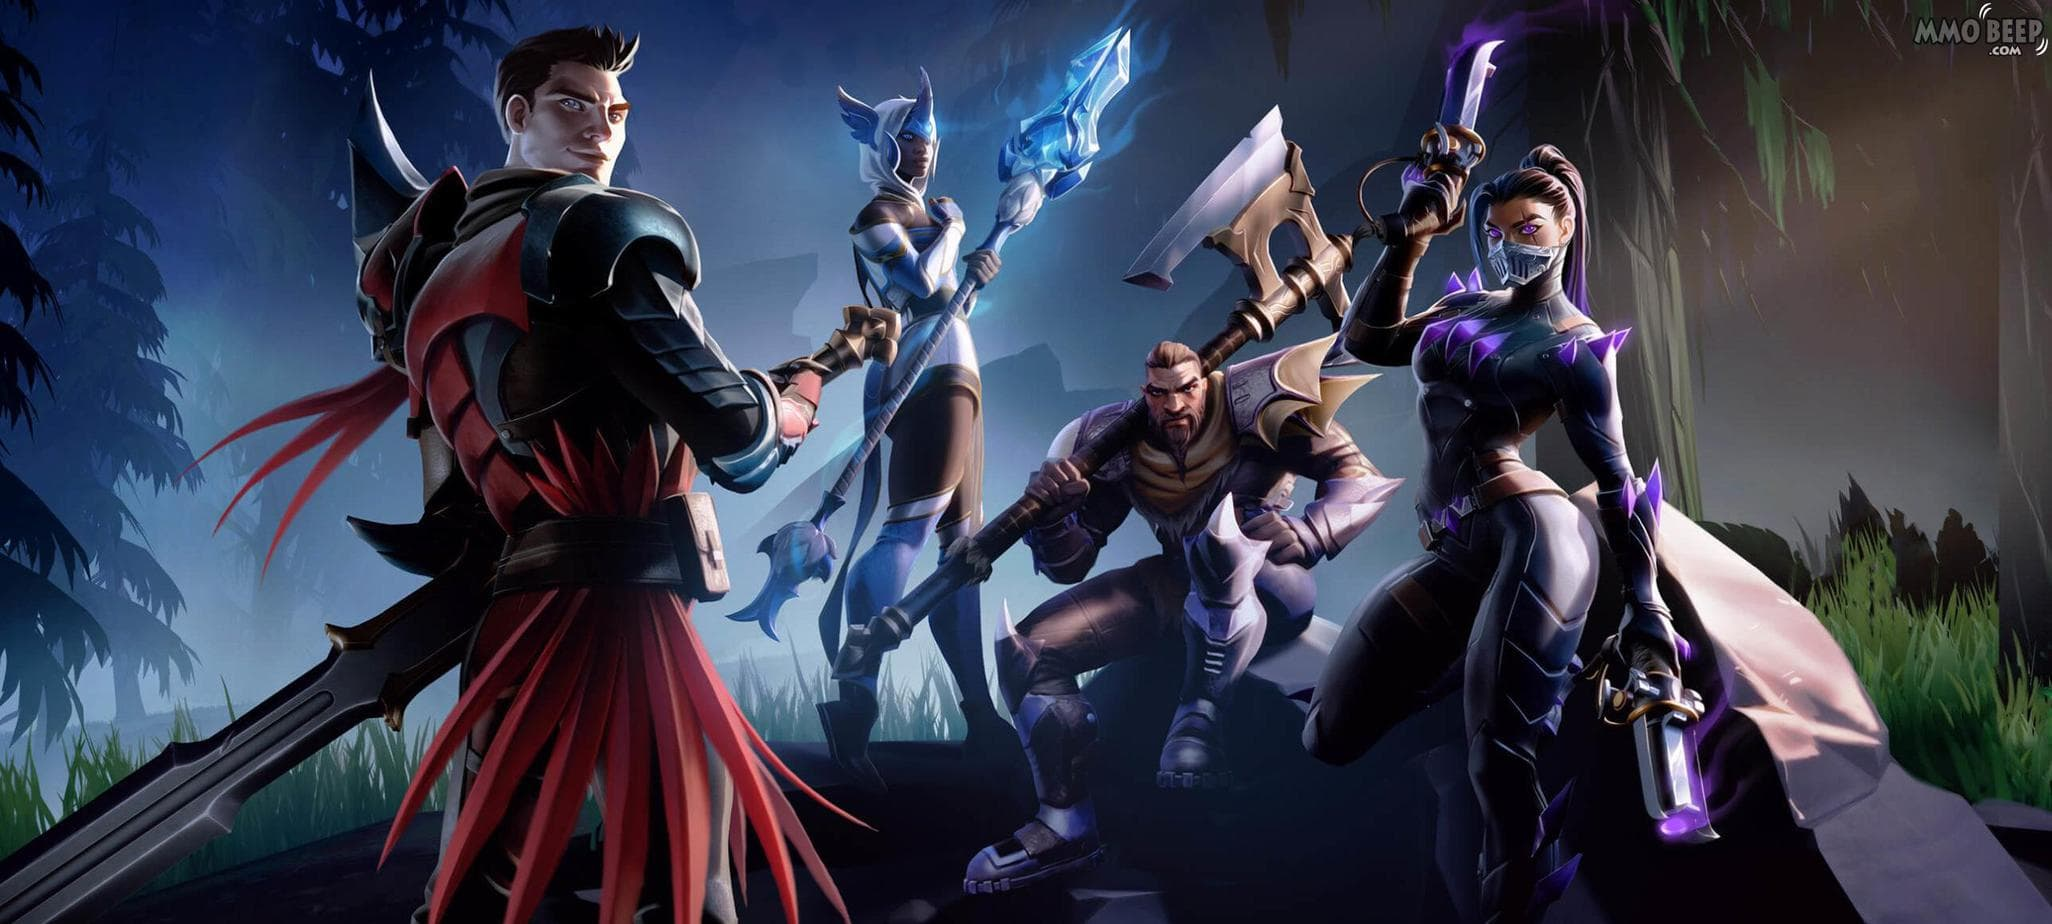 Dauntless Gliders, New Behemoth, Halloween Event And A Lot Of More Interesting Content Is Coming According To Roadmap